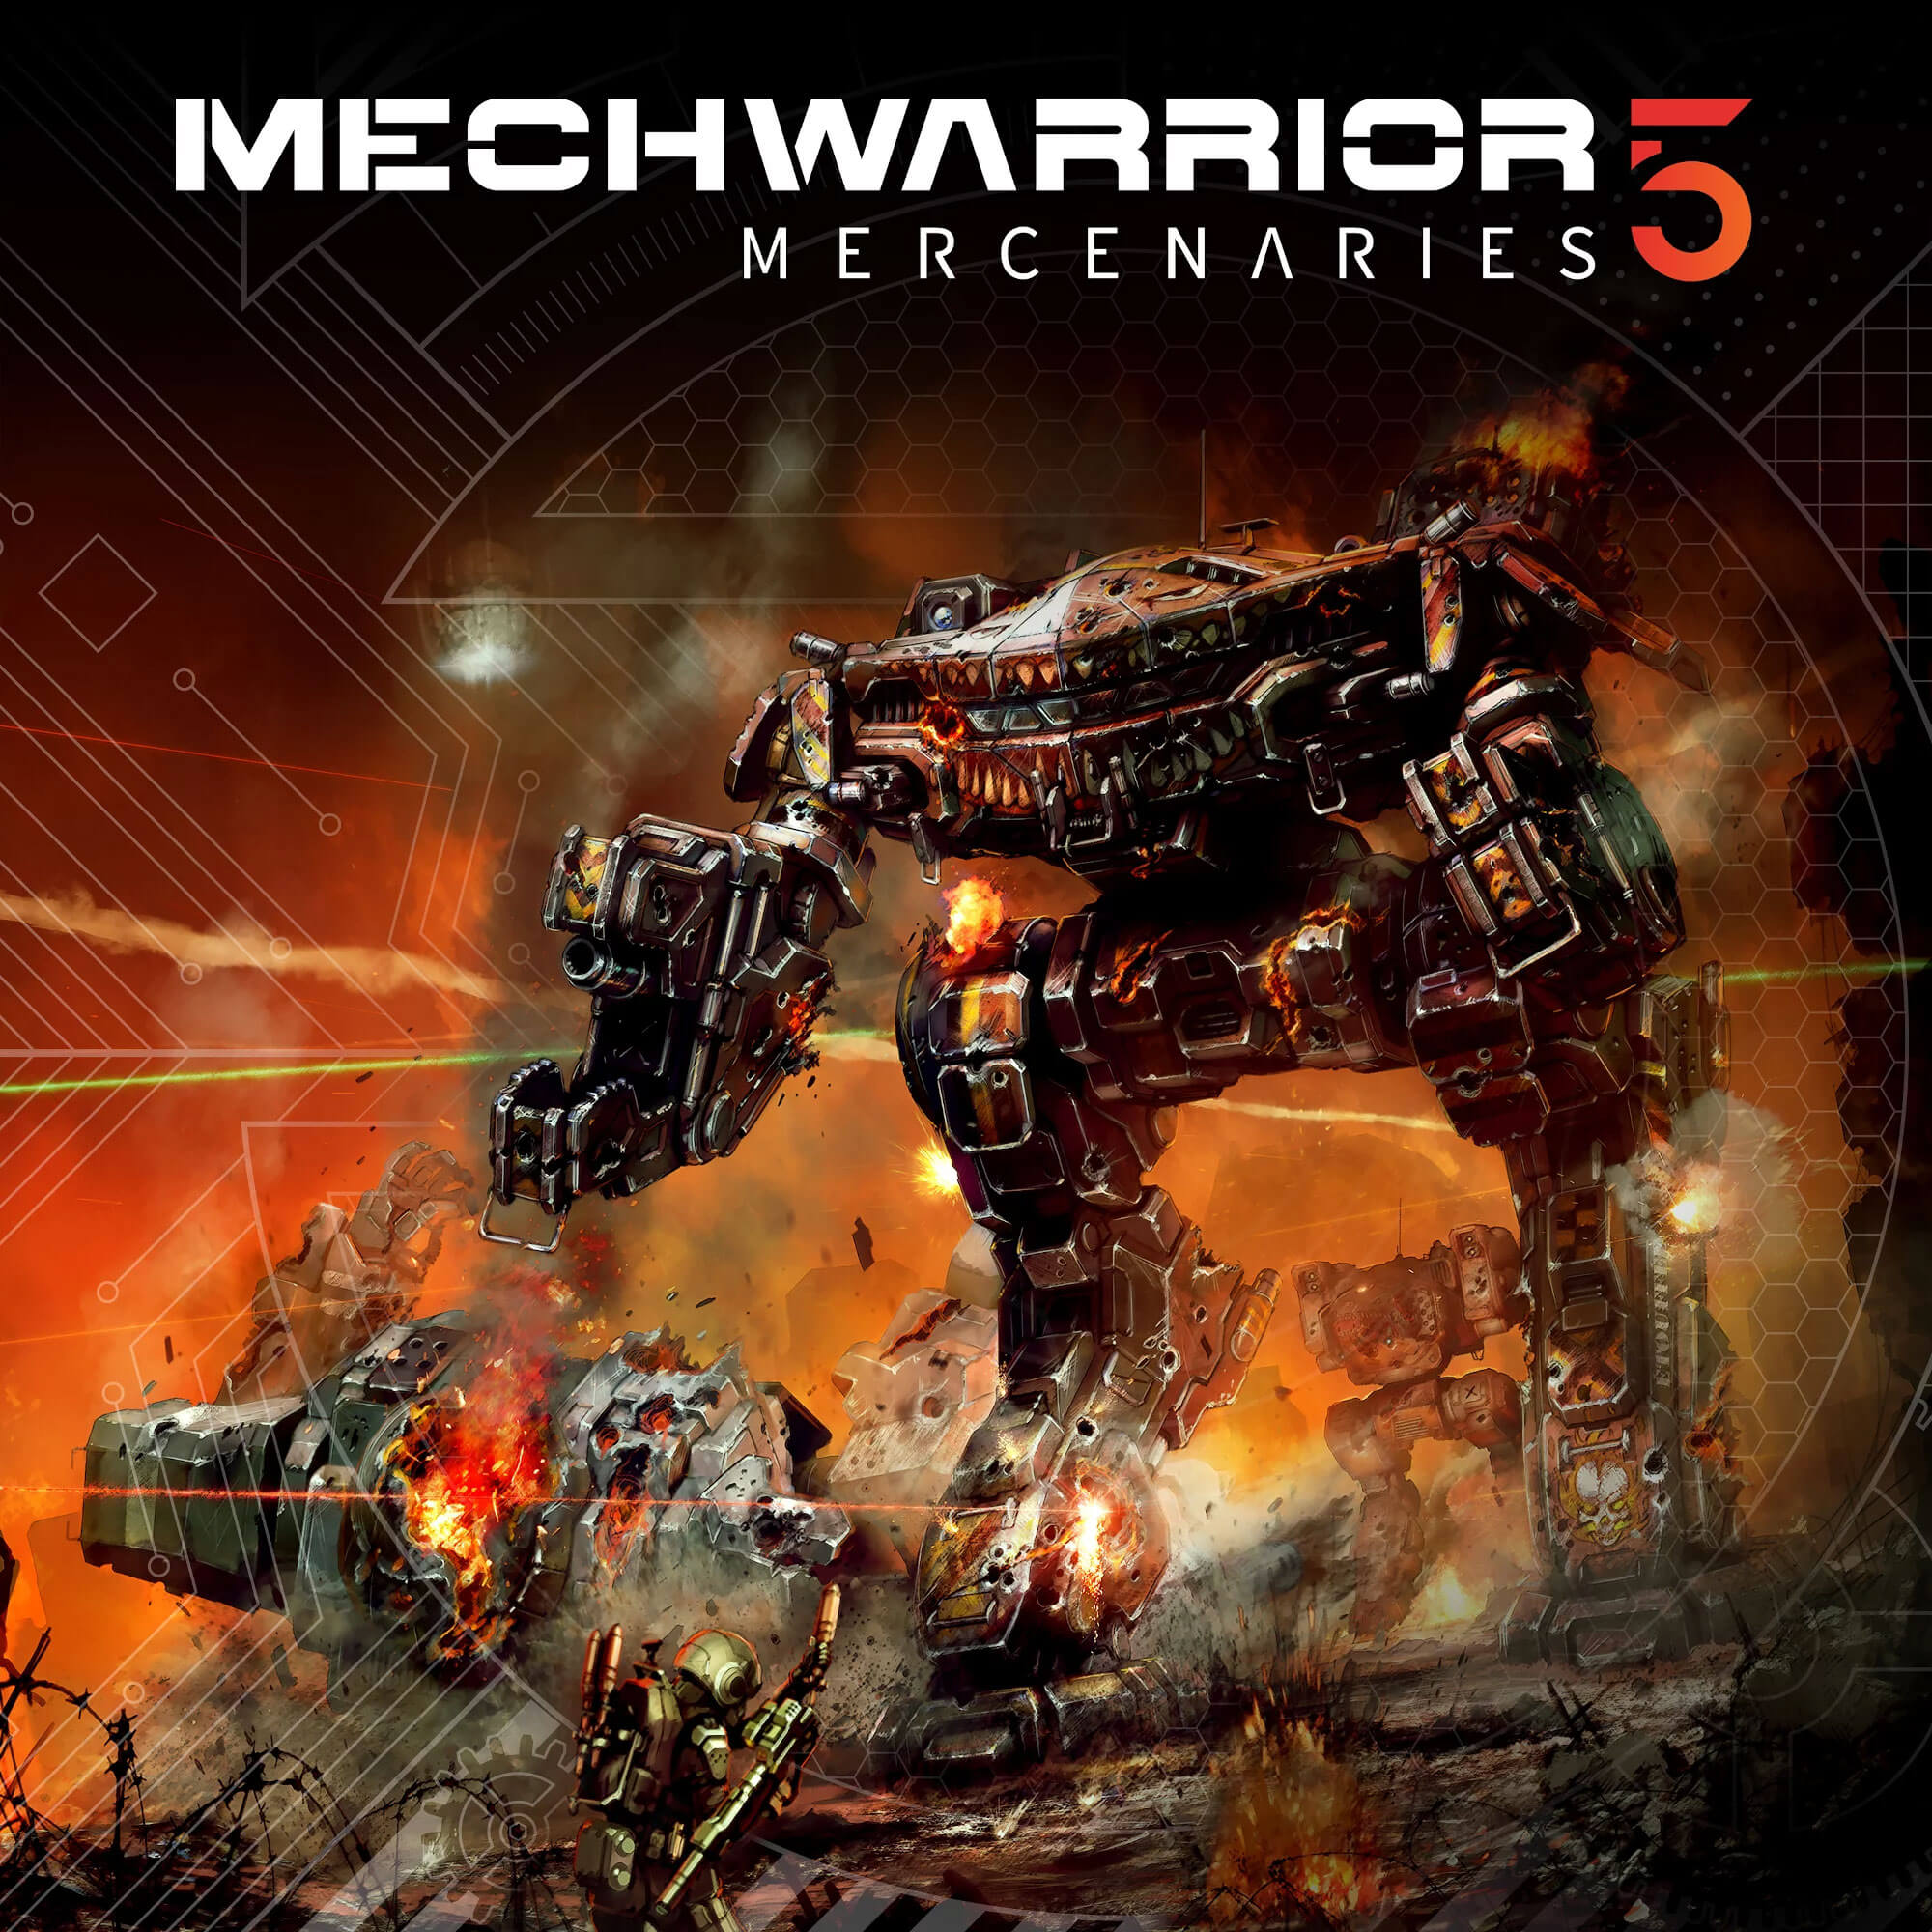 https://img5.downloadha.com/hosein/files/2019/12/MechWarrior-5-Mercenaries-pc-cover-large.jpg